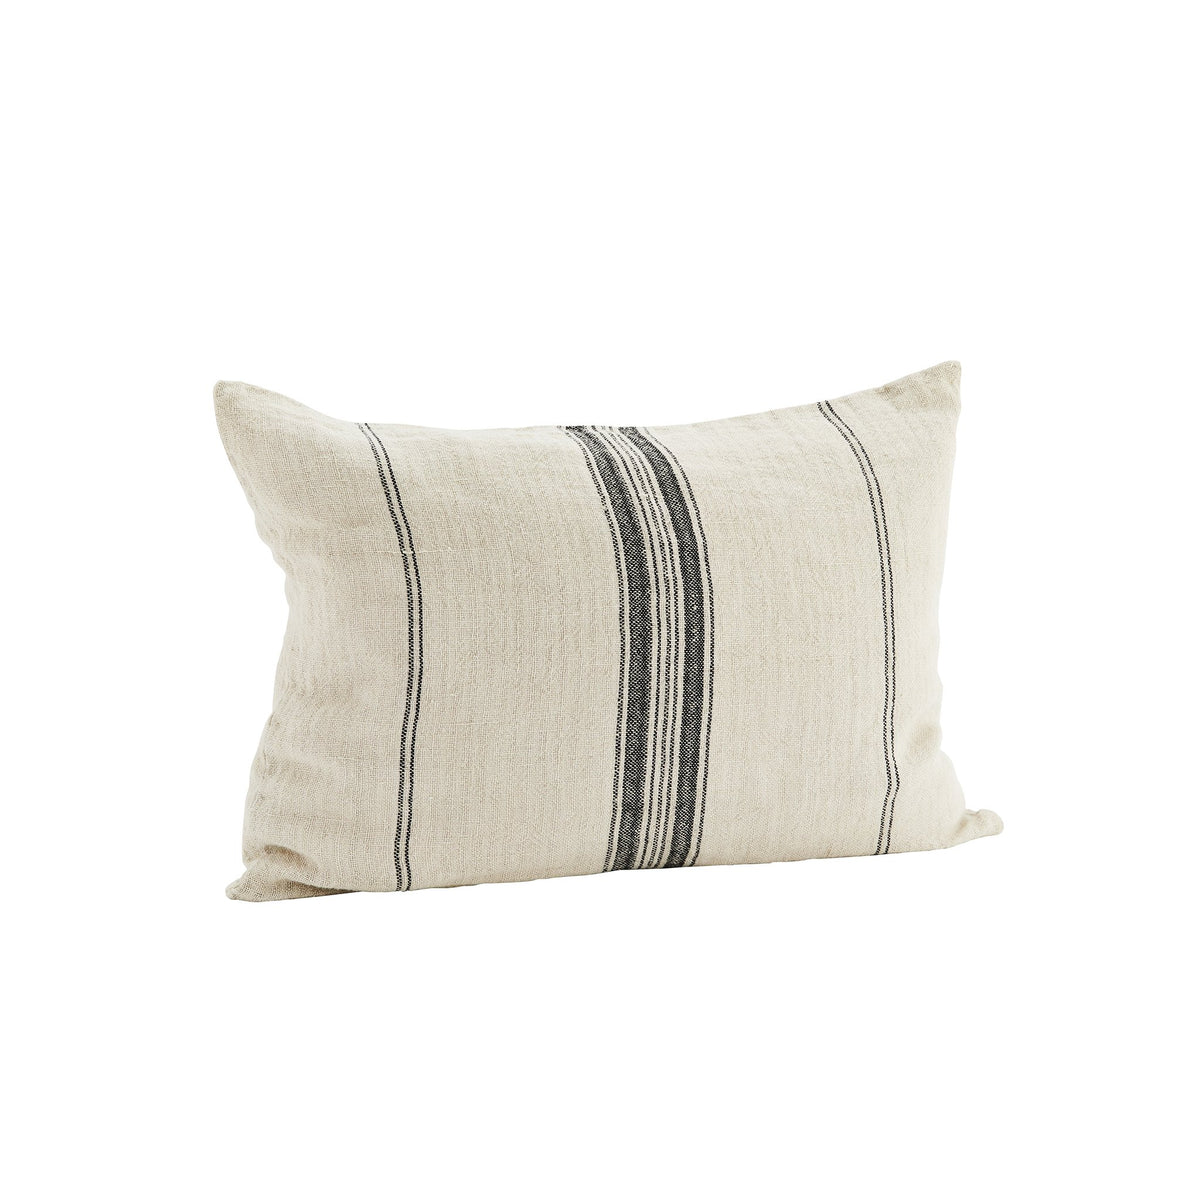 Madam Stoltz Linen Cushion Cover Beige - Scandi Minimal